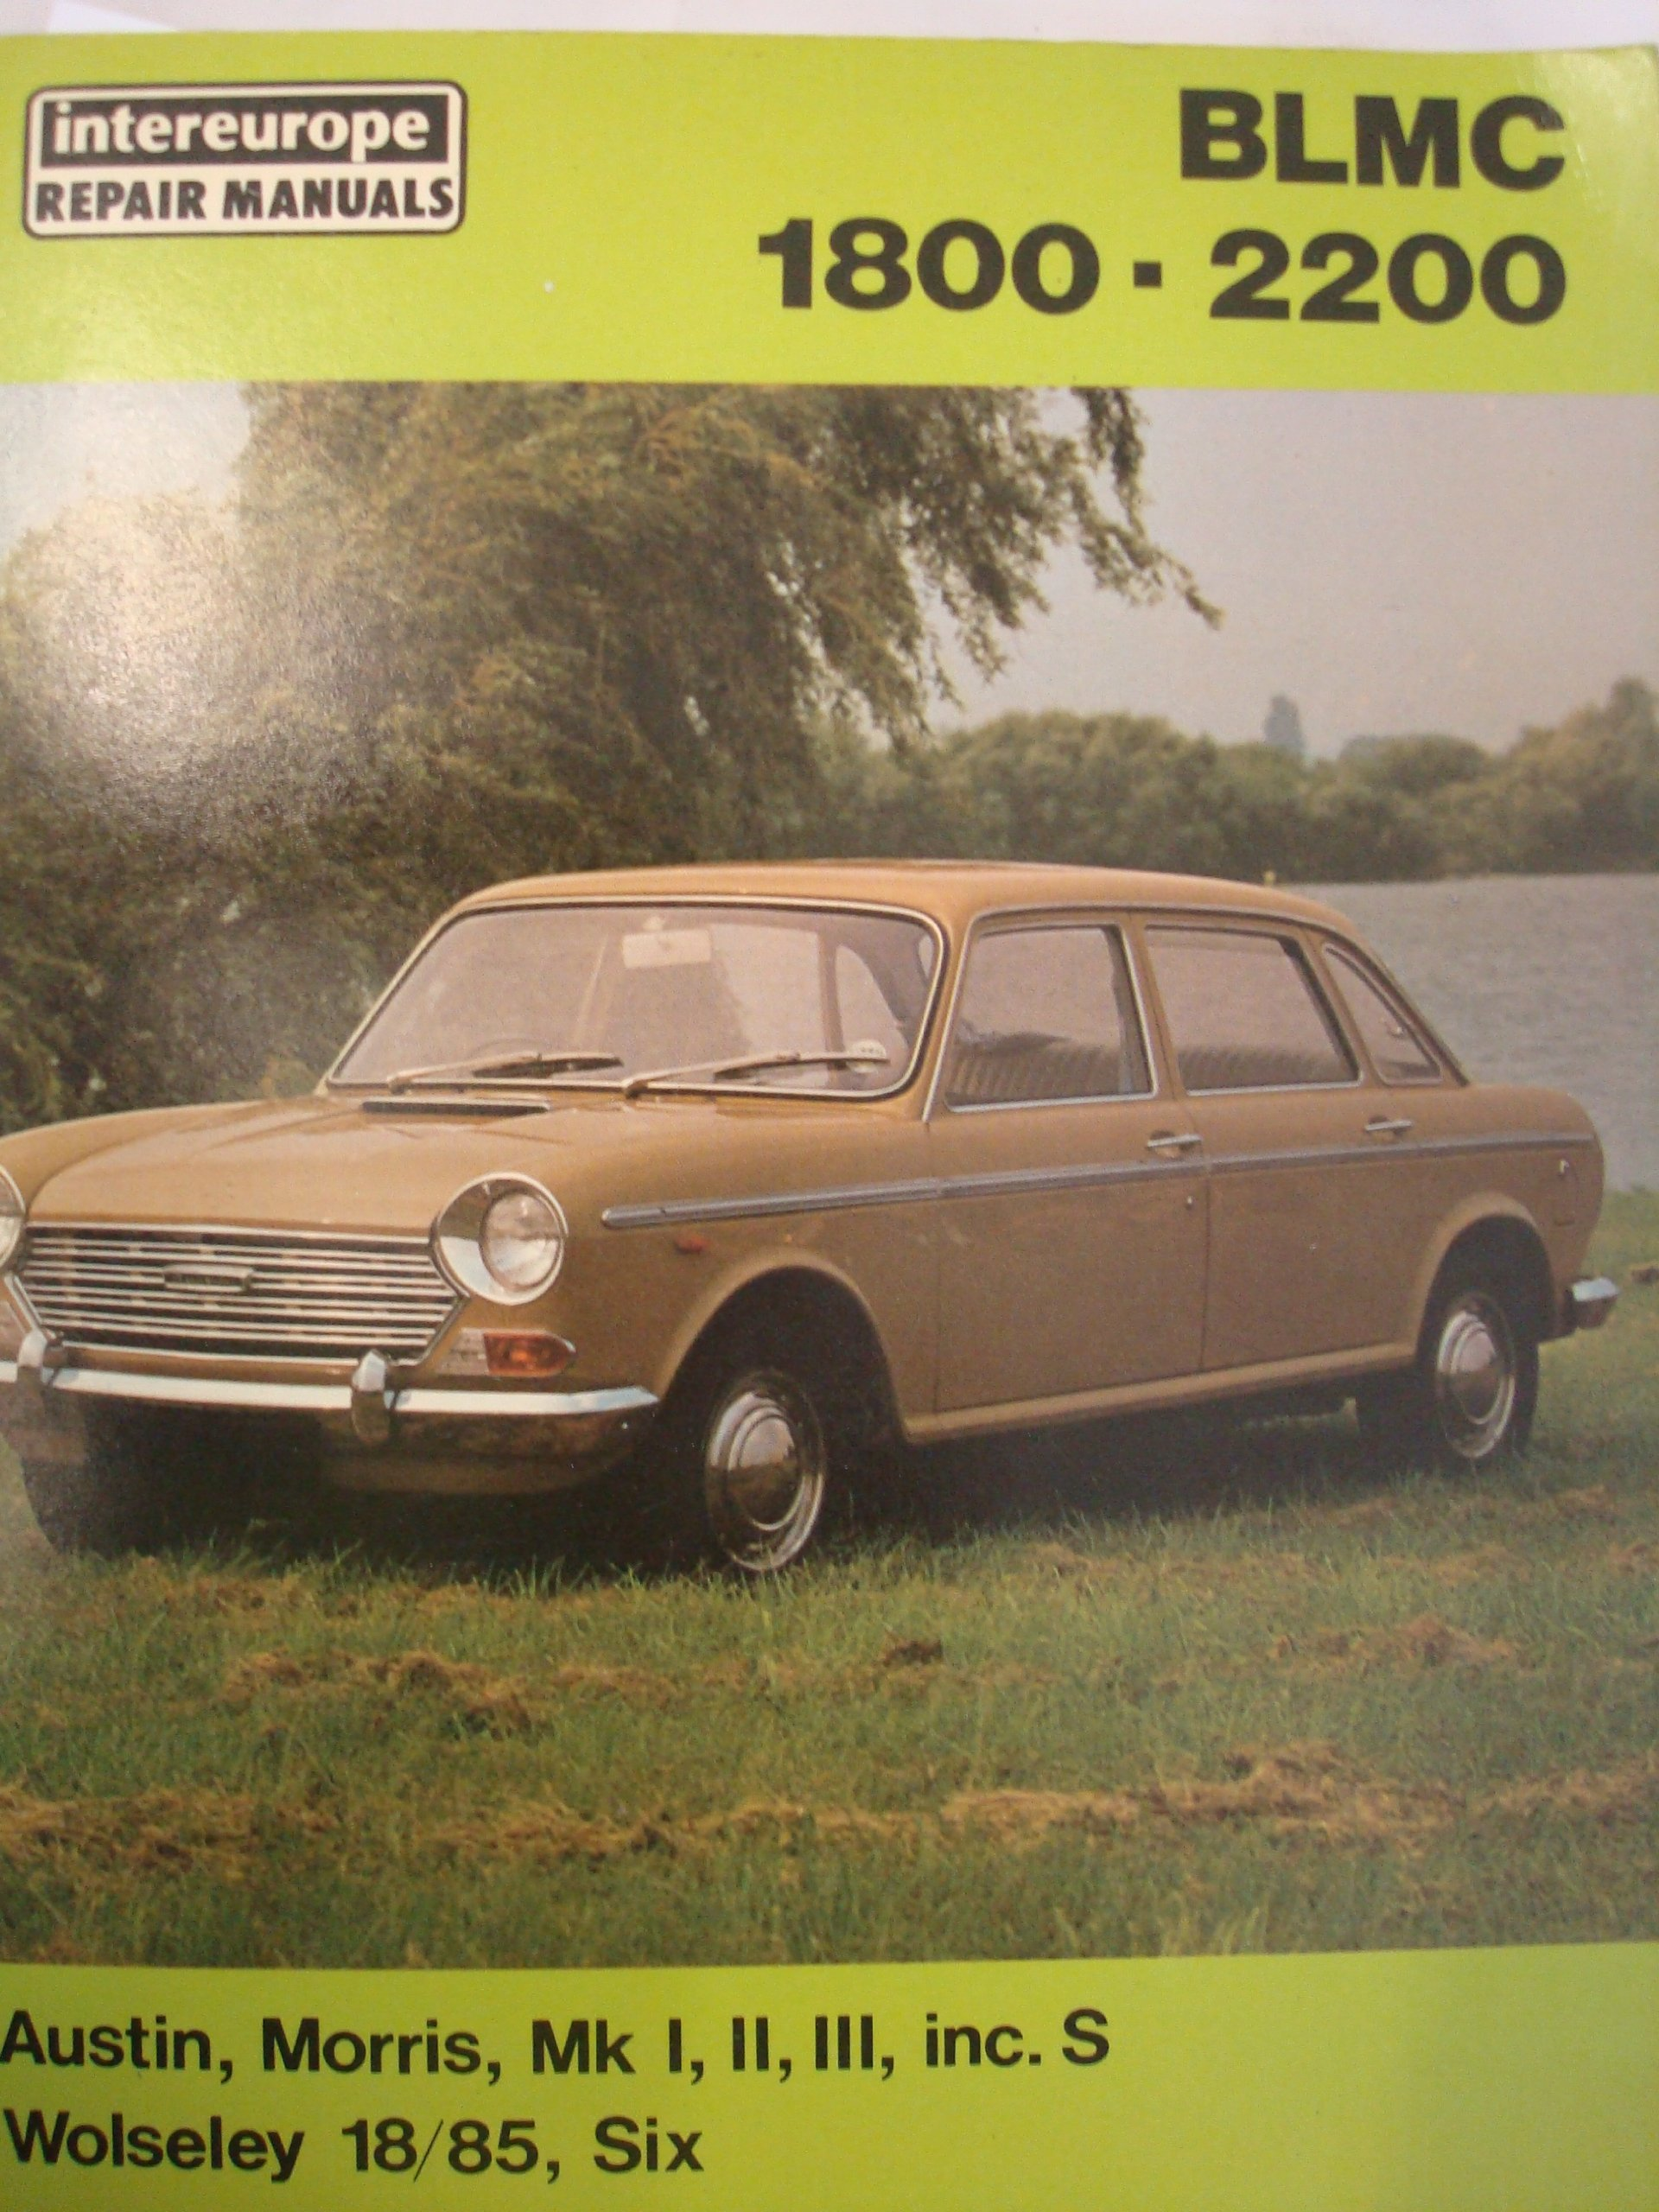 B. L. M. C. 1800 Workshop Manual: Austin, Morris and Wolseley 18/85